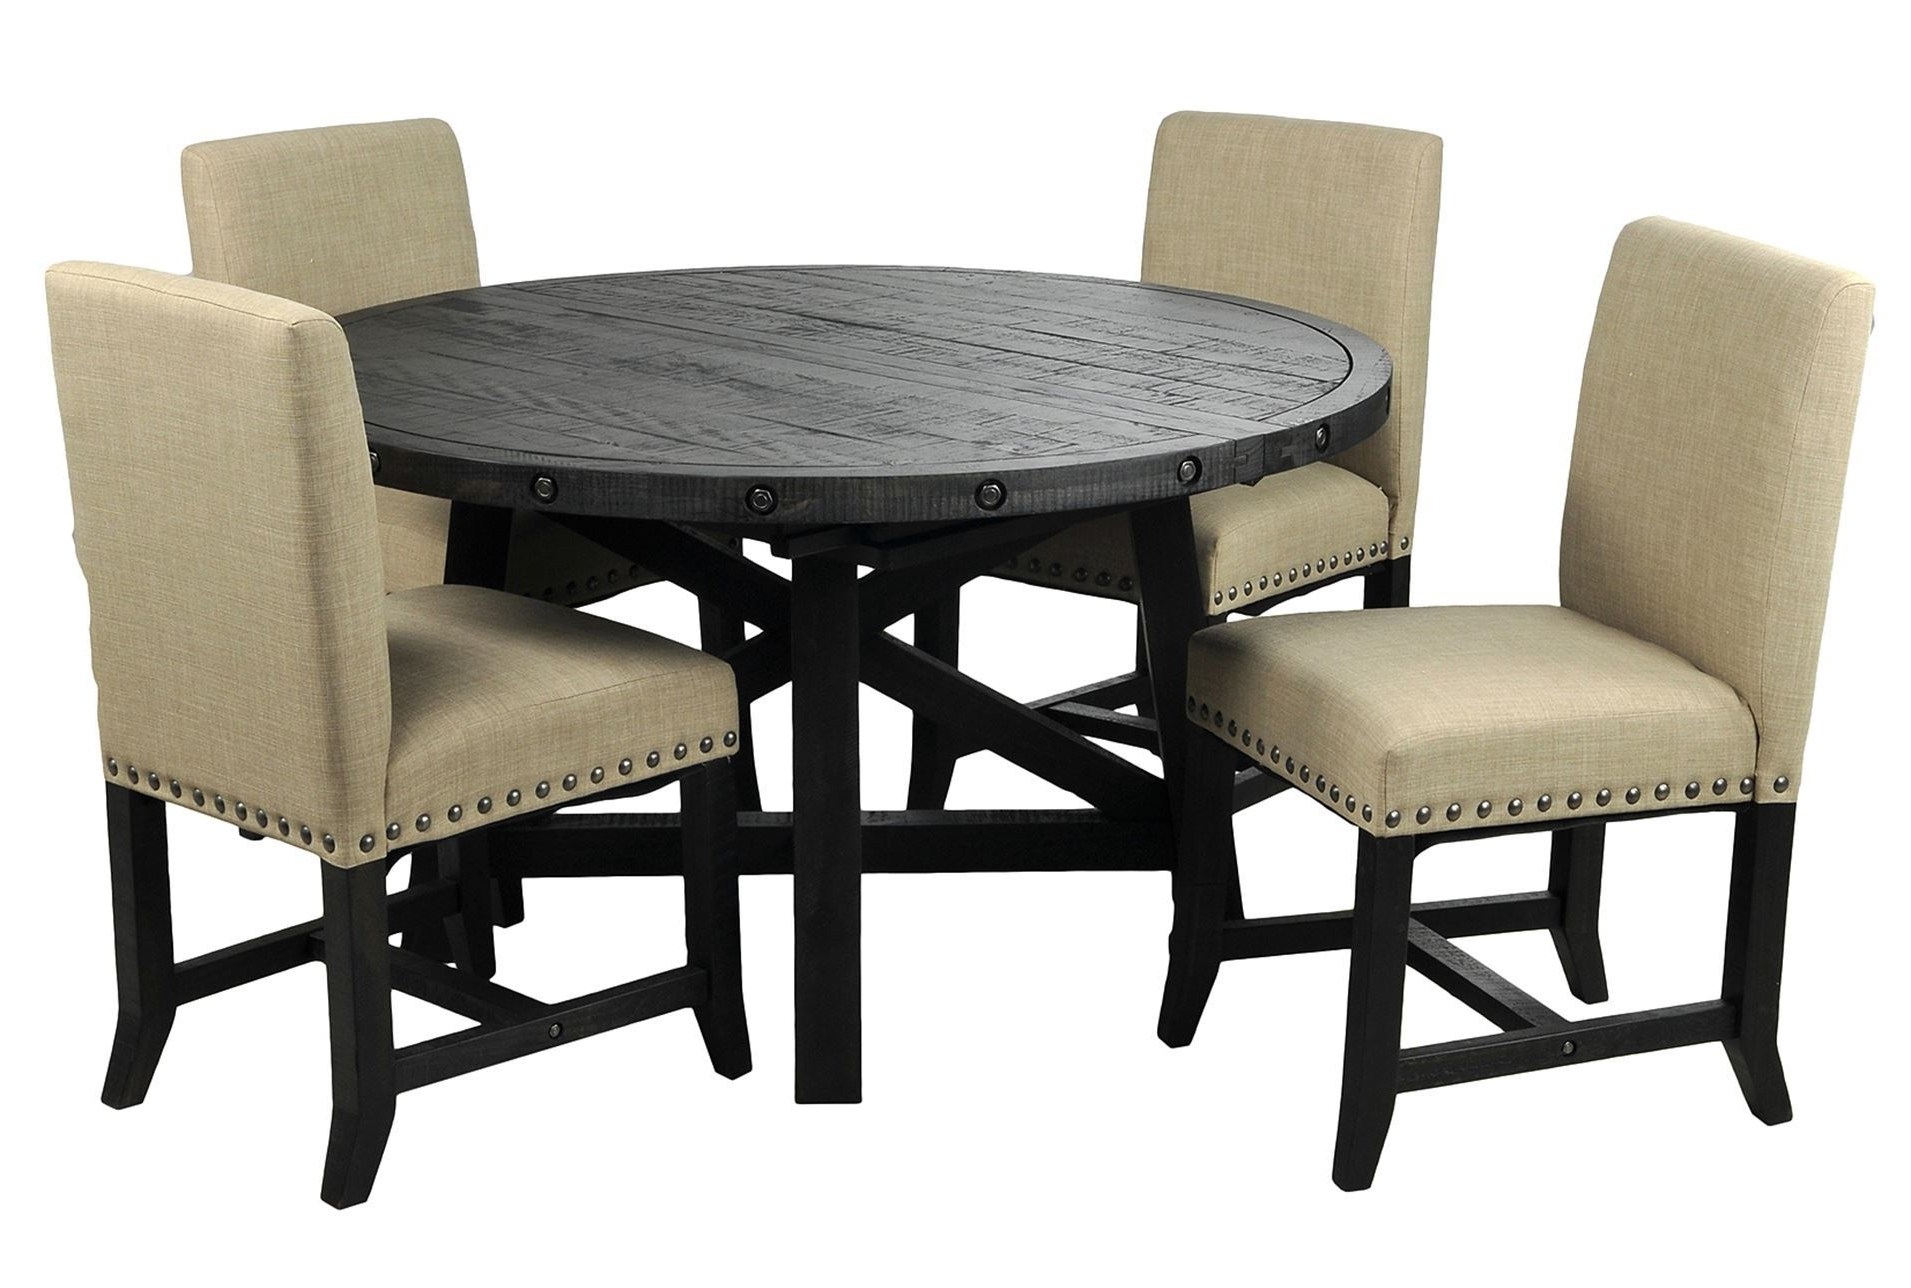 Jaxon 5 Piece Round Dining Set Wupholstered Chairs Dining Set With With Regard To Newest Jaxon 7 Piece Rectangle Dining Sets With Wood Chairs (View 8 of 25)